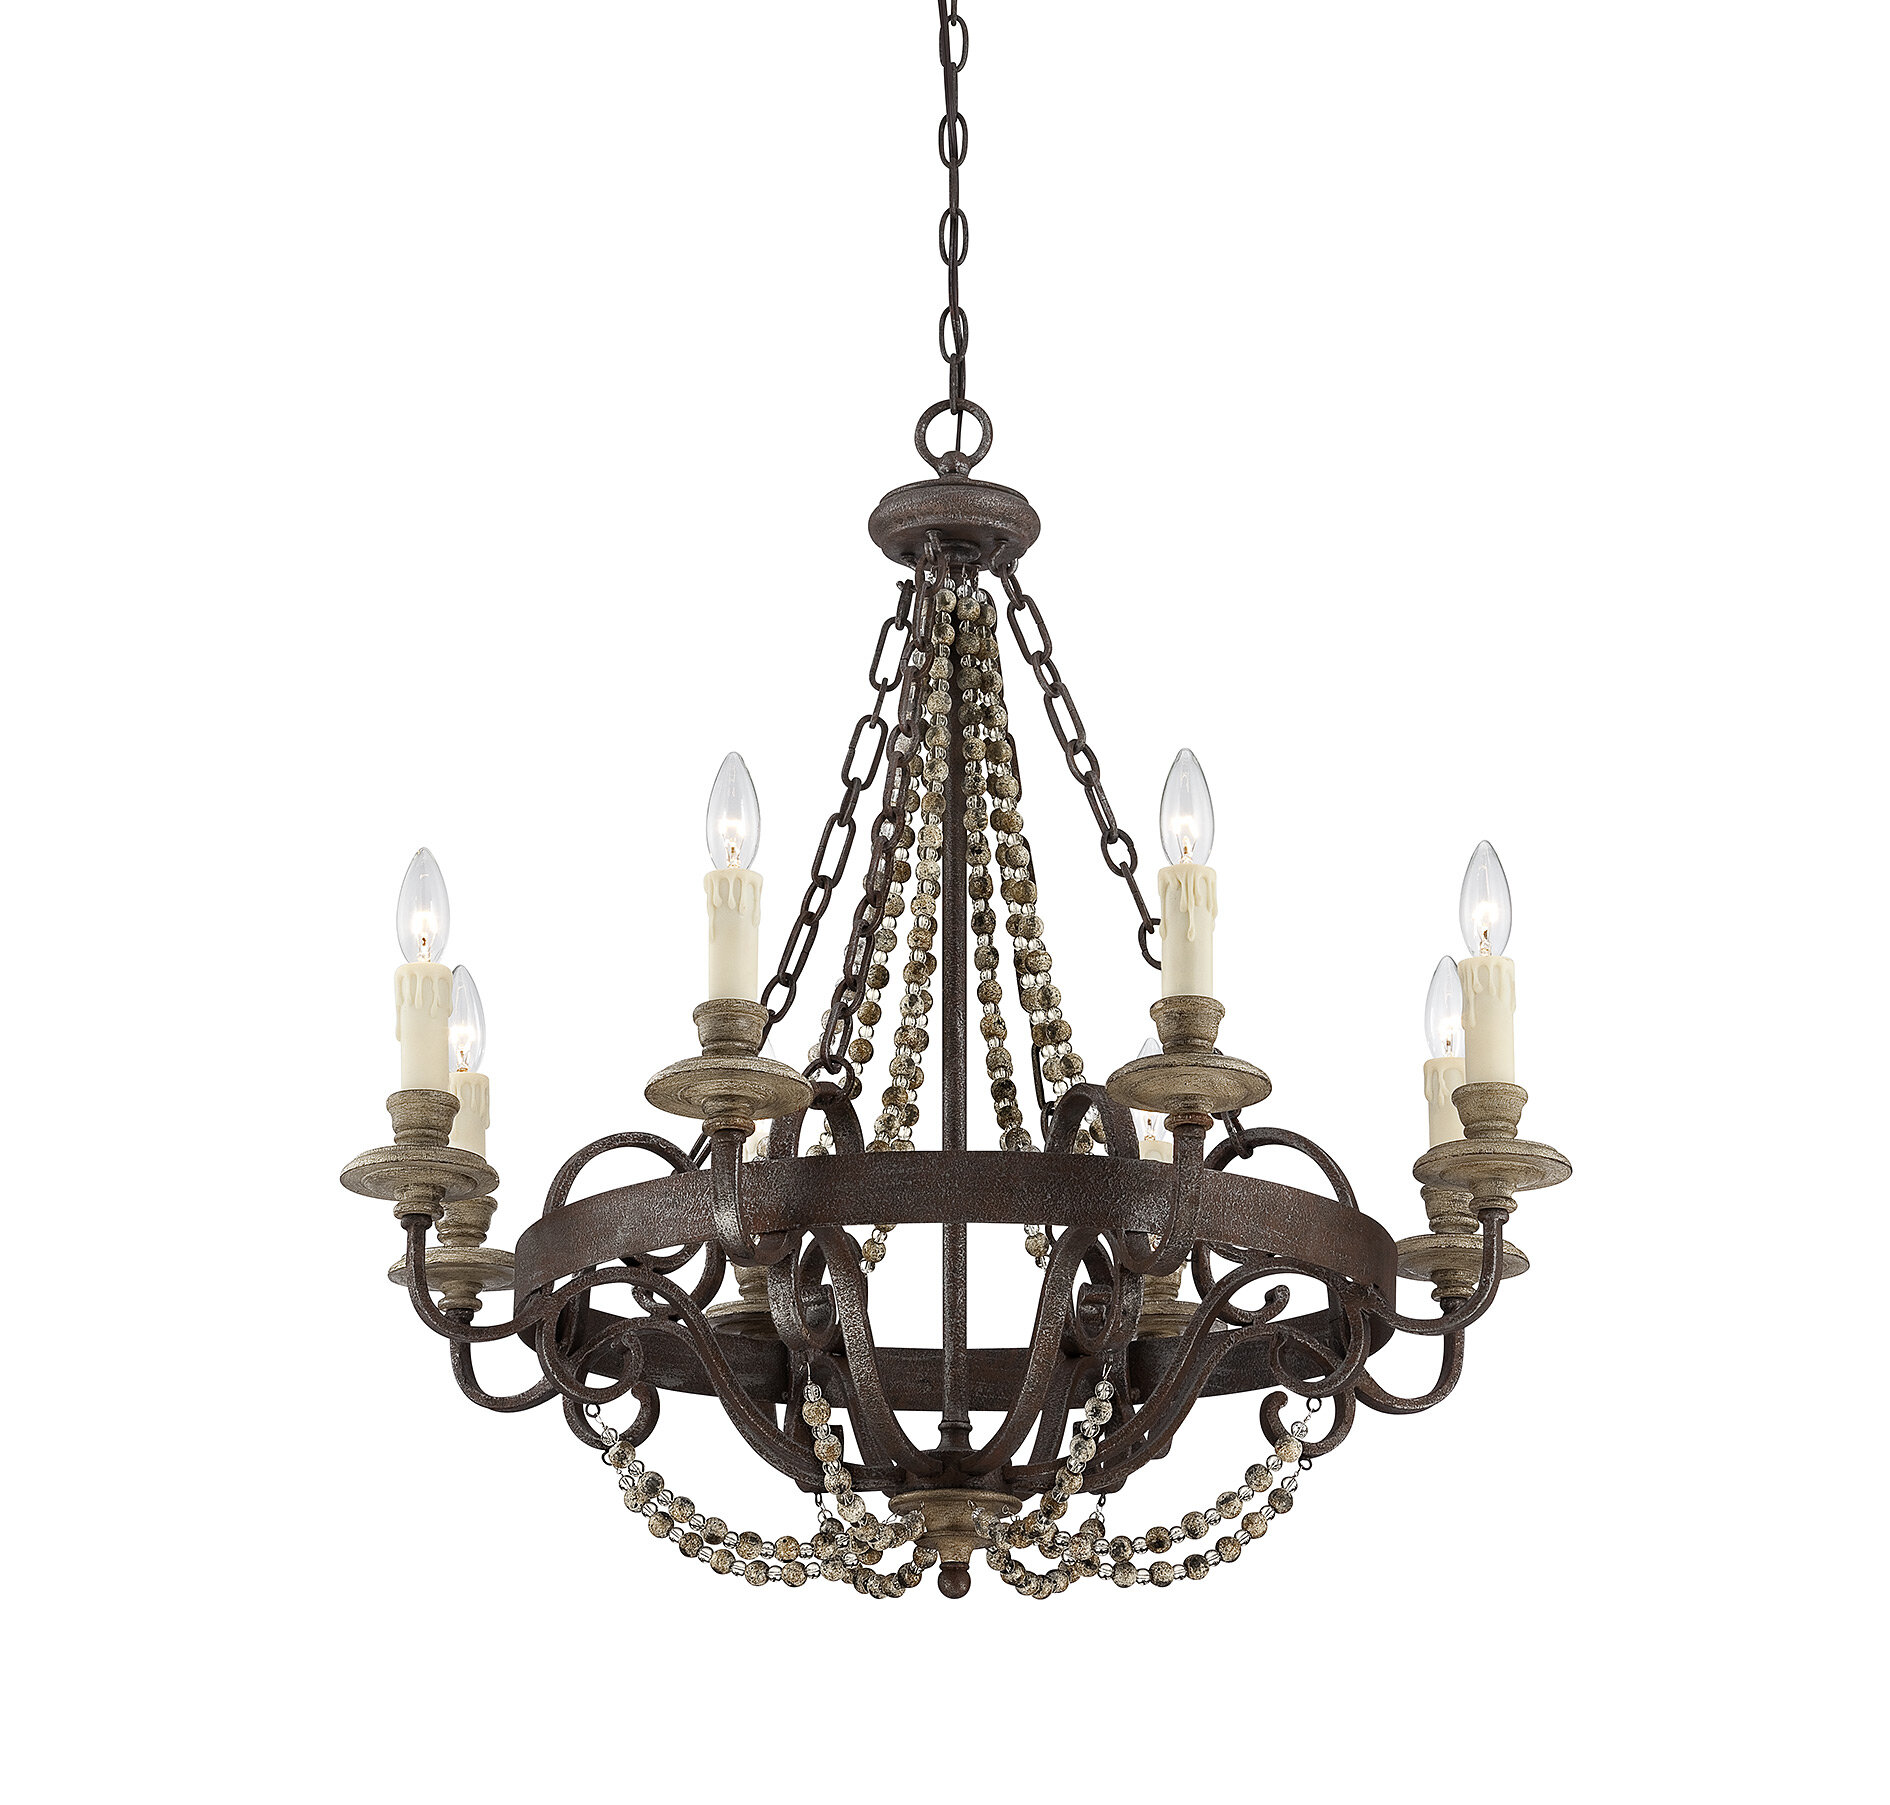 8 light candle style chandelier reviews birch lane arubaitofo Gallery